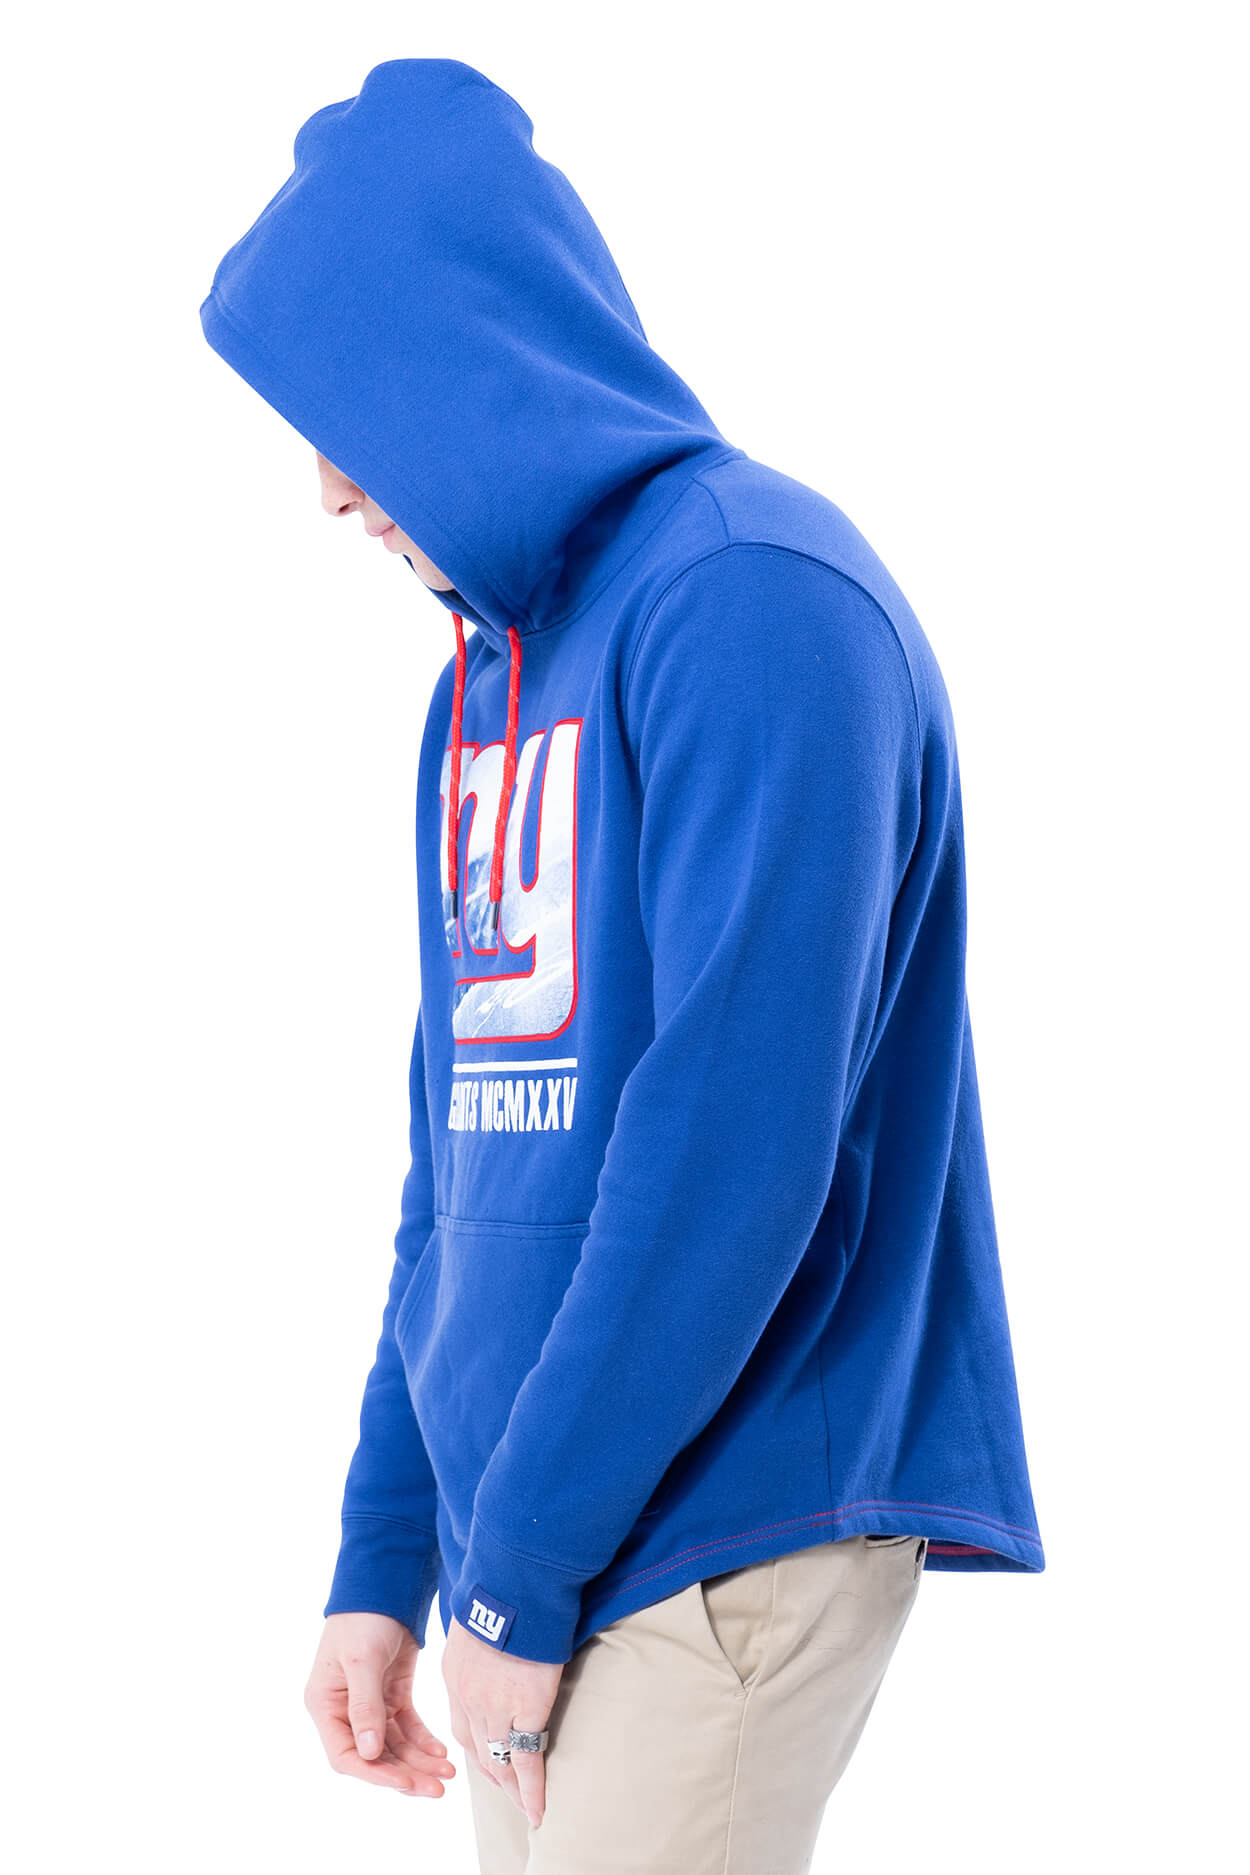 NFL New York Giants Men's Embroidered Hoodie|New York Giants